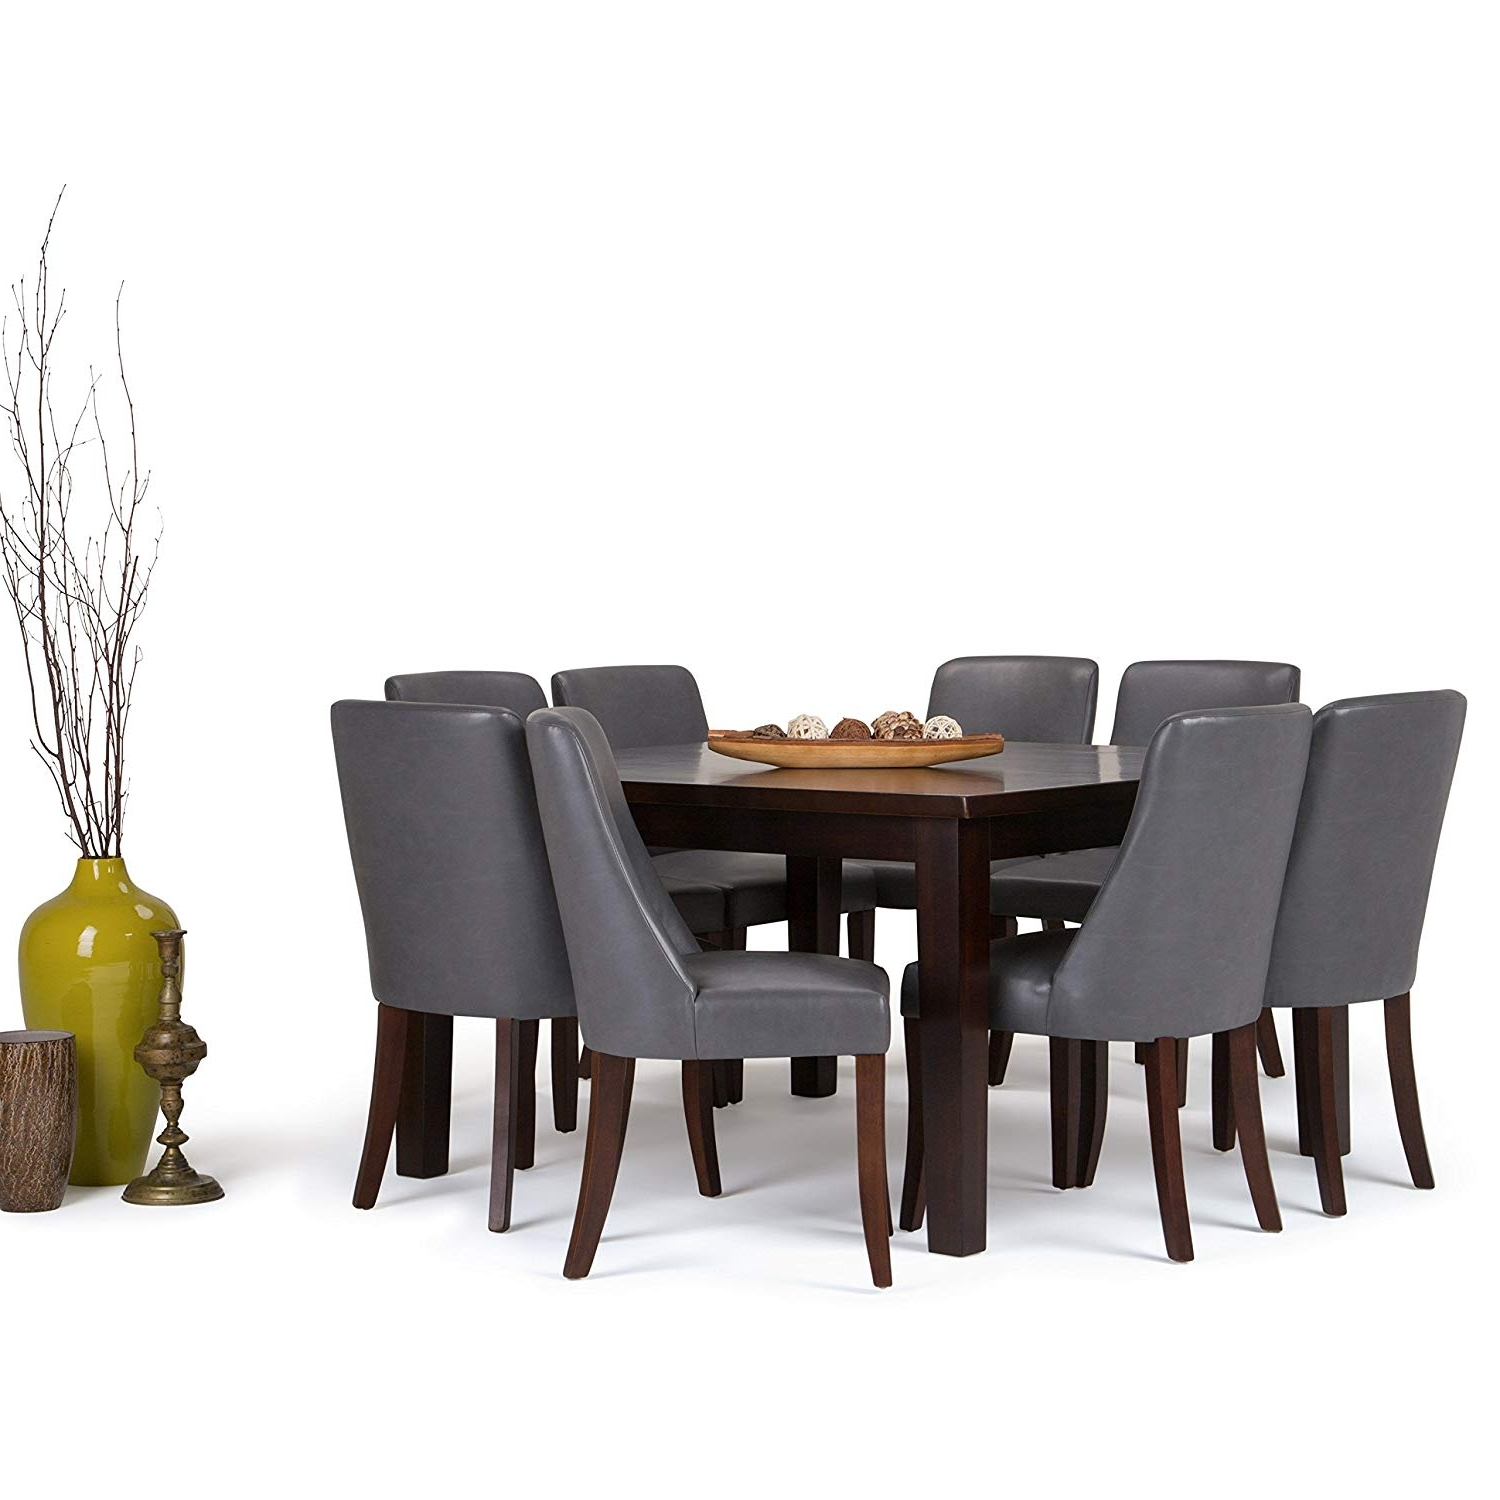 Amazon: Simpli Home Walden 9 Piece Dining Set, Stone Grey Intended For Trendy Walden 9 Piece Extension Dining Sets (View 15 of 25)